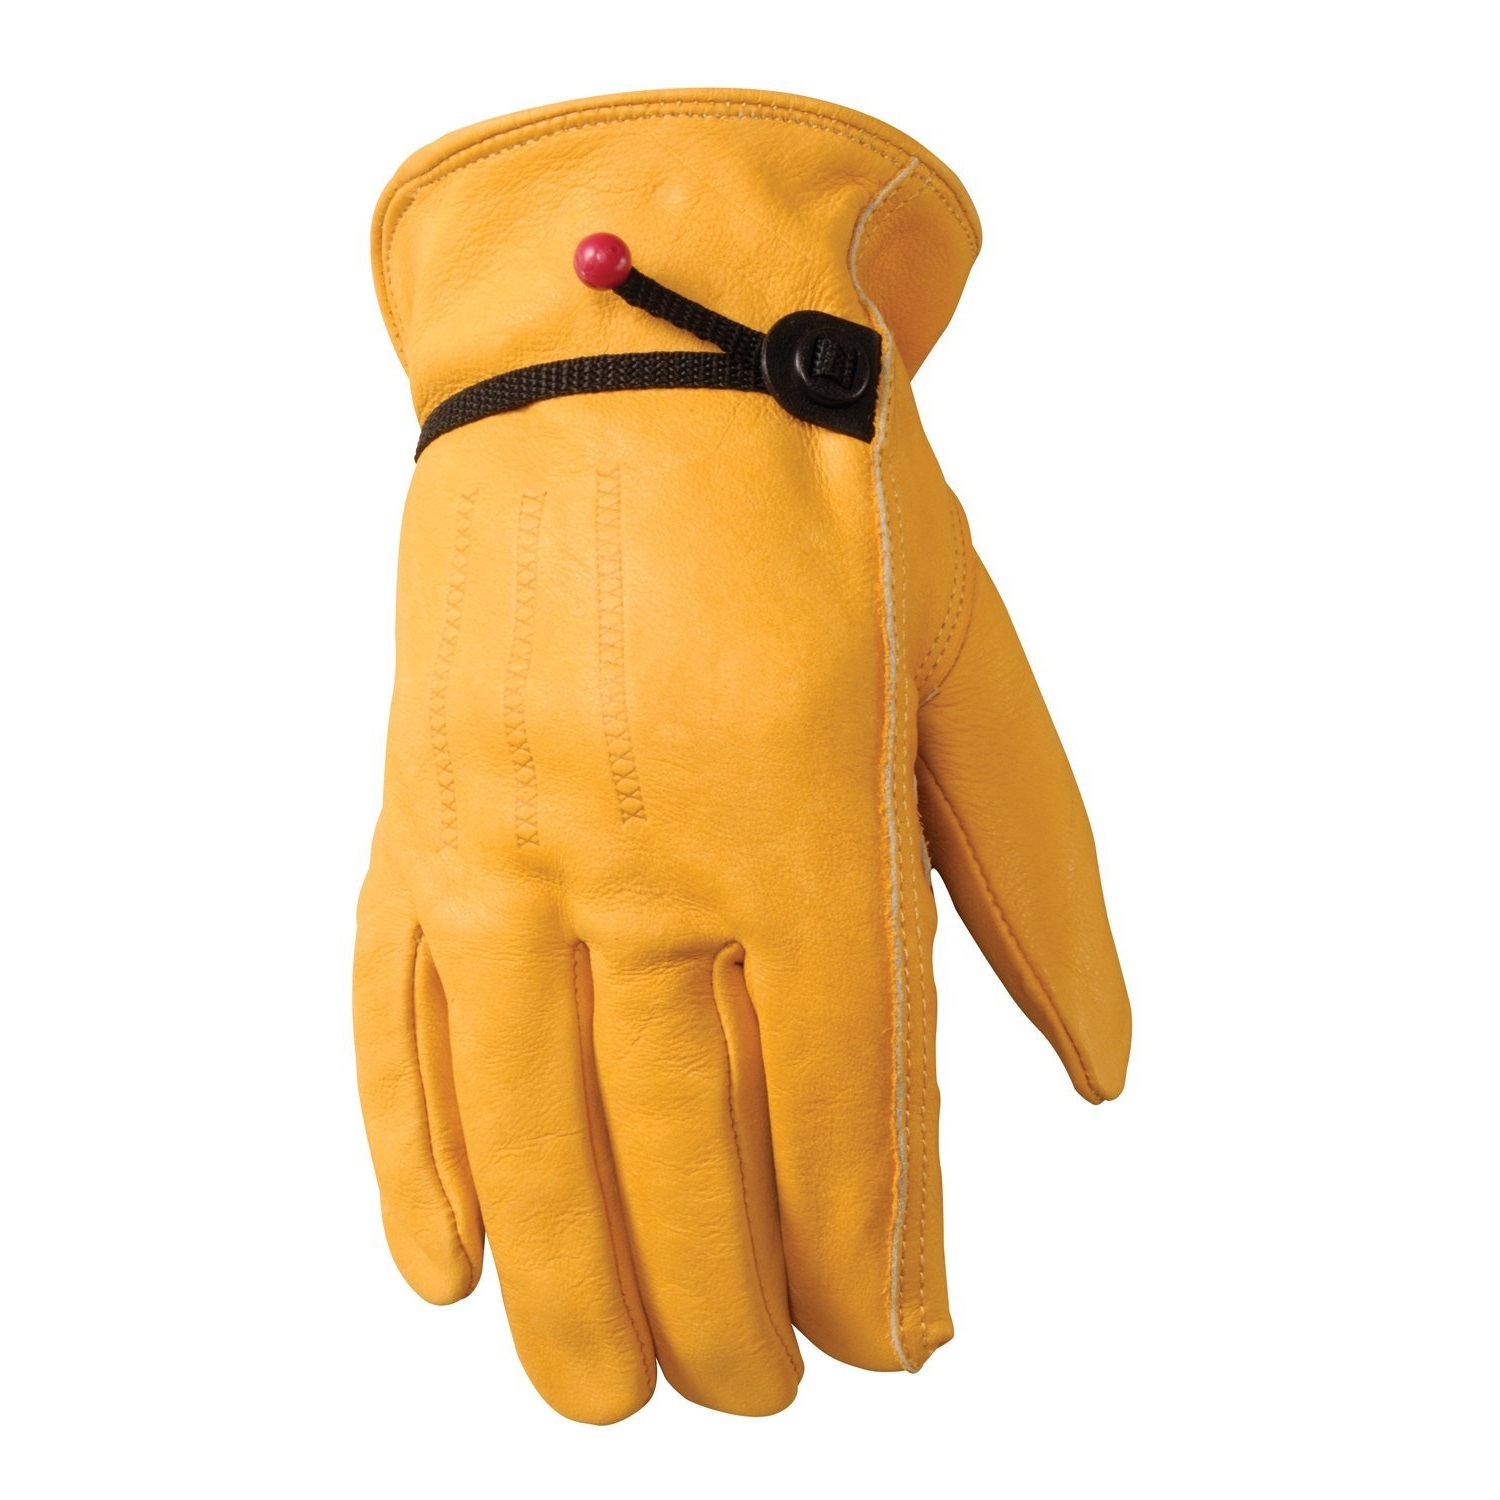 Wells Lamont Grain Cowhide Work Gloves for Men M